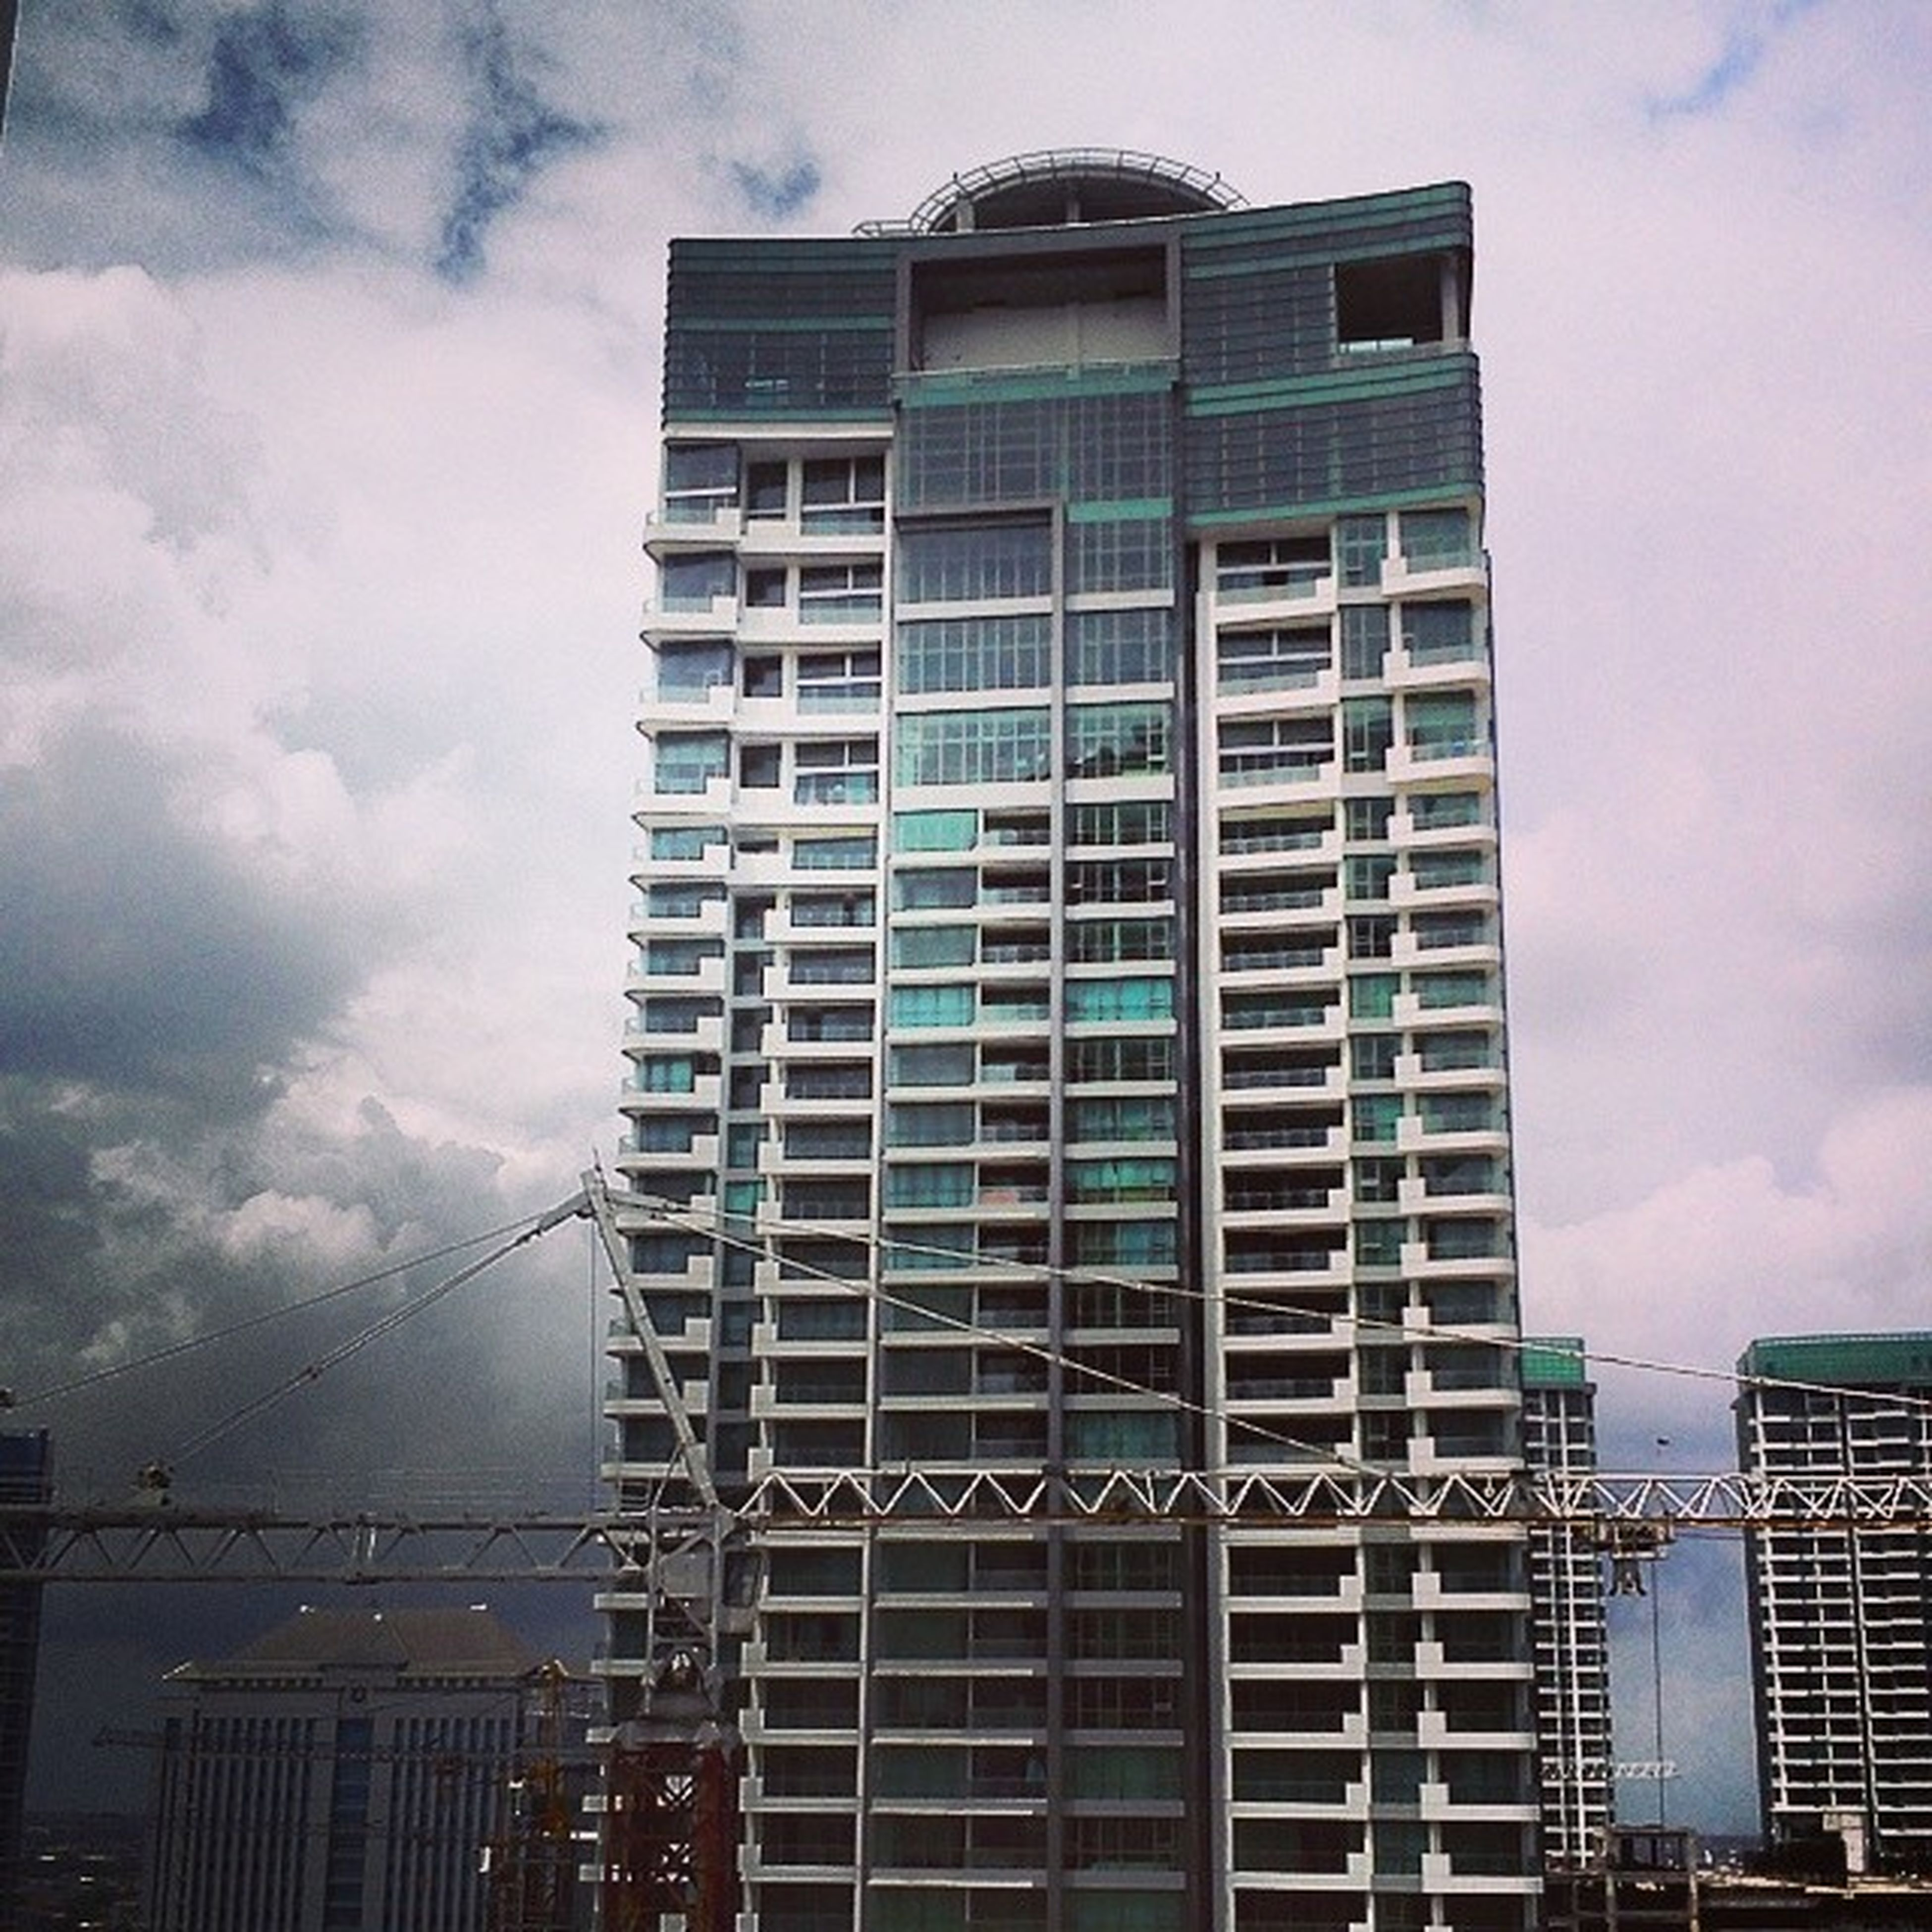 building exterior, architecture, built structure, sky, city, low angle view, modern, office building, cloud - sky, skyscraper, tall - high, building, cloudy, tower, cloud, glass - material, development, reflection, residential building, tall